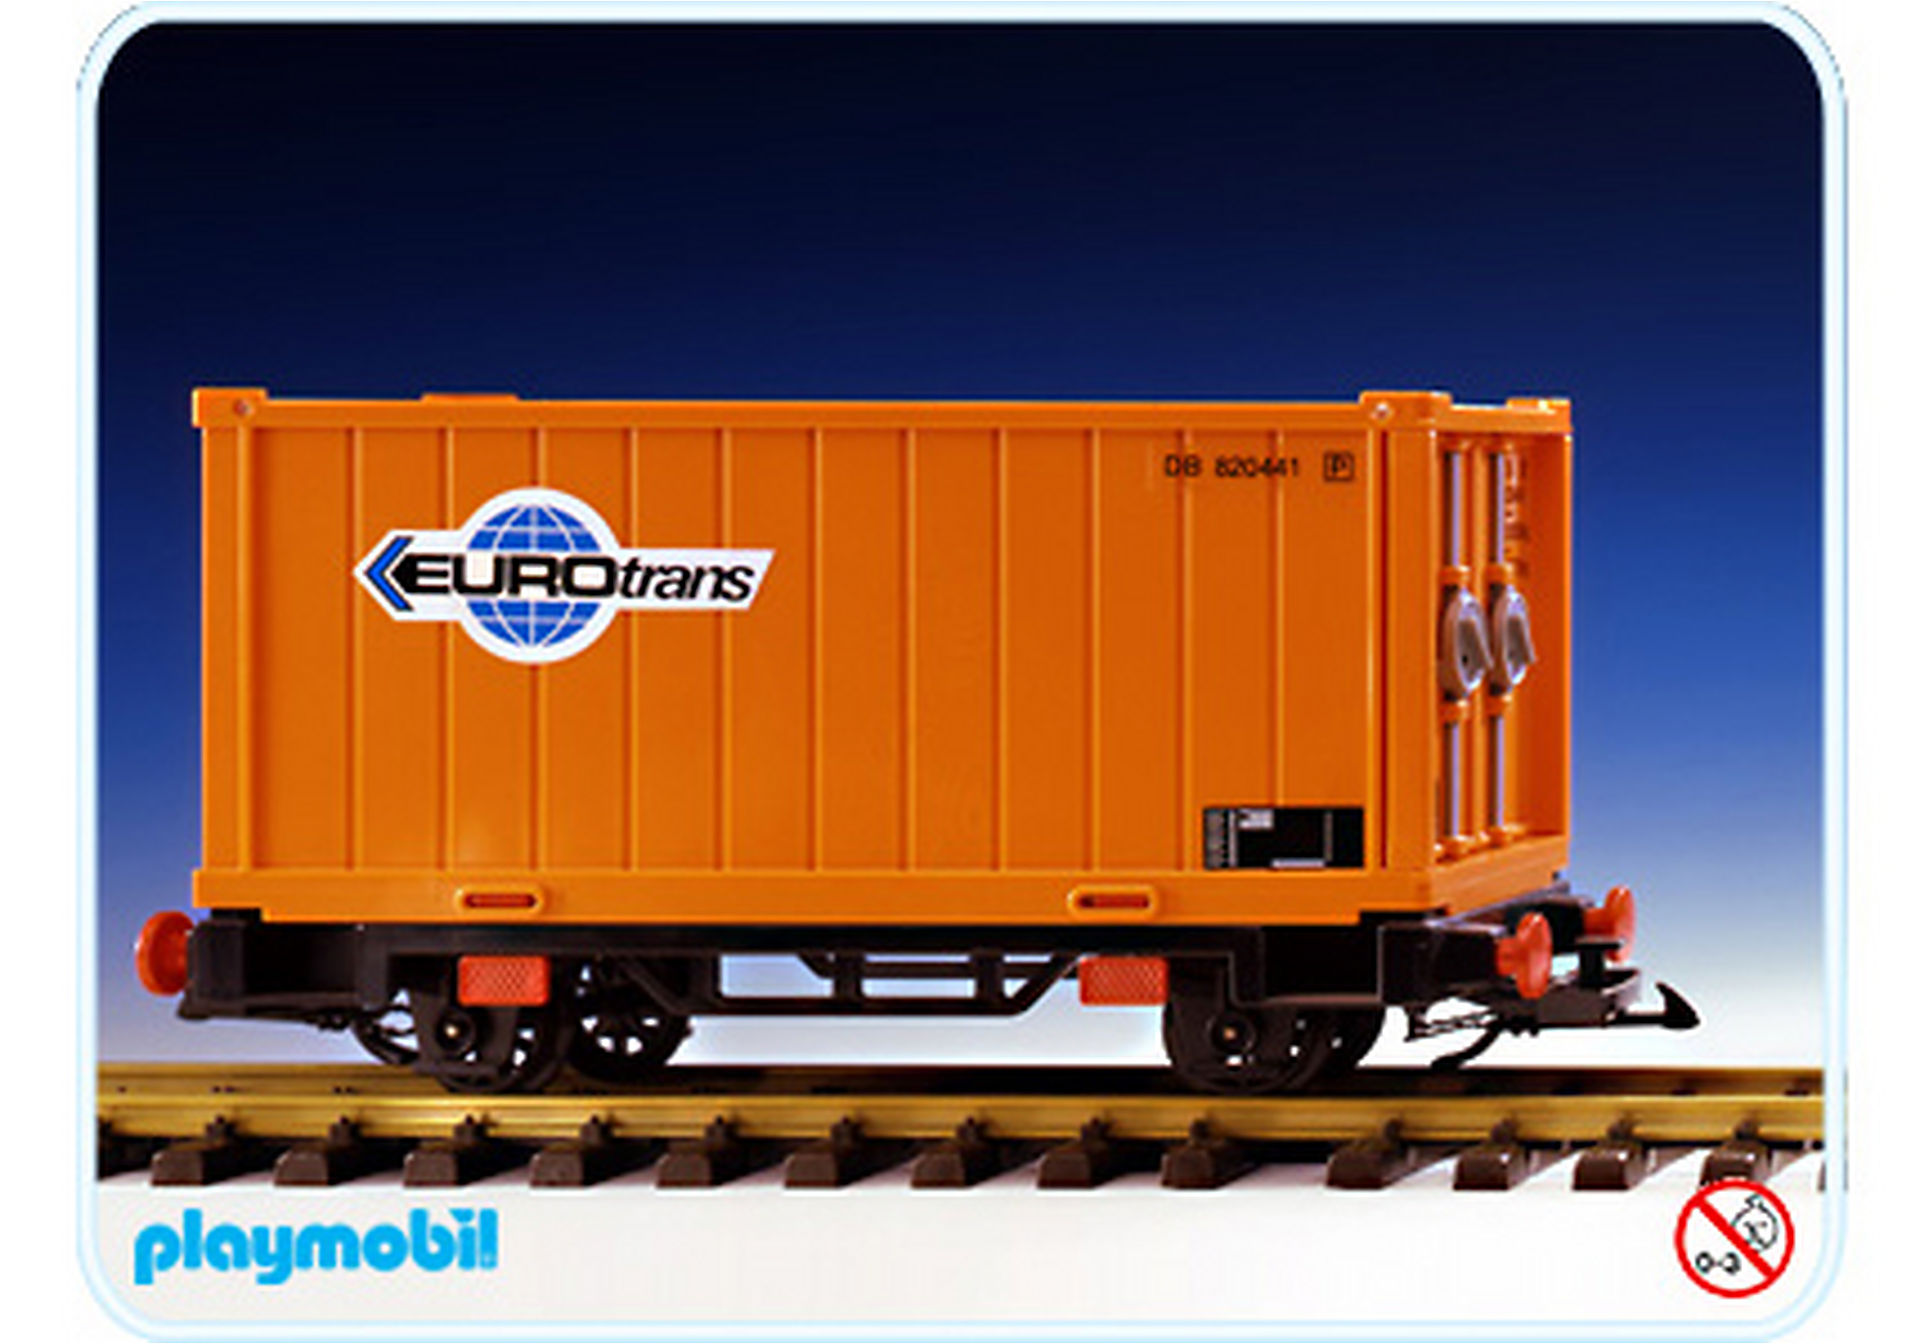 http://media.playmobil.com/i/playmobil/4113-A_product_detail/Wagon container